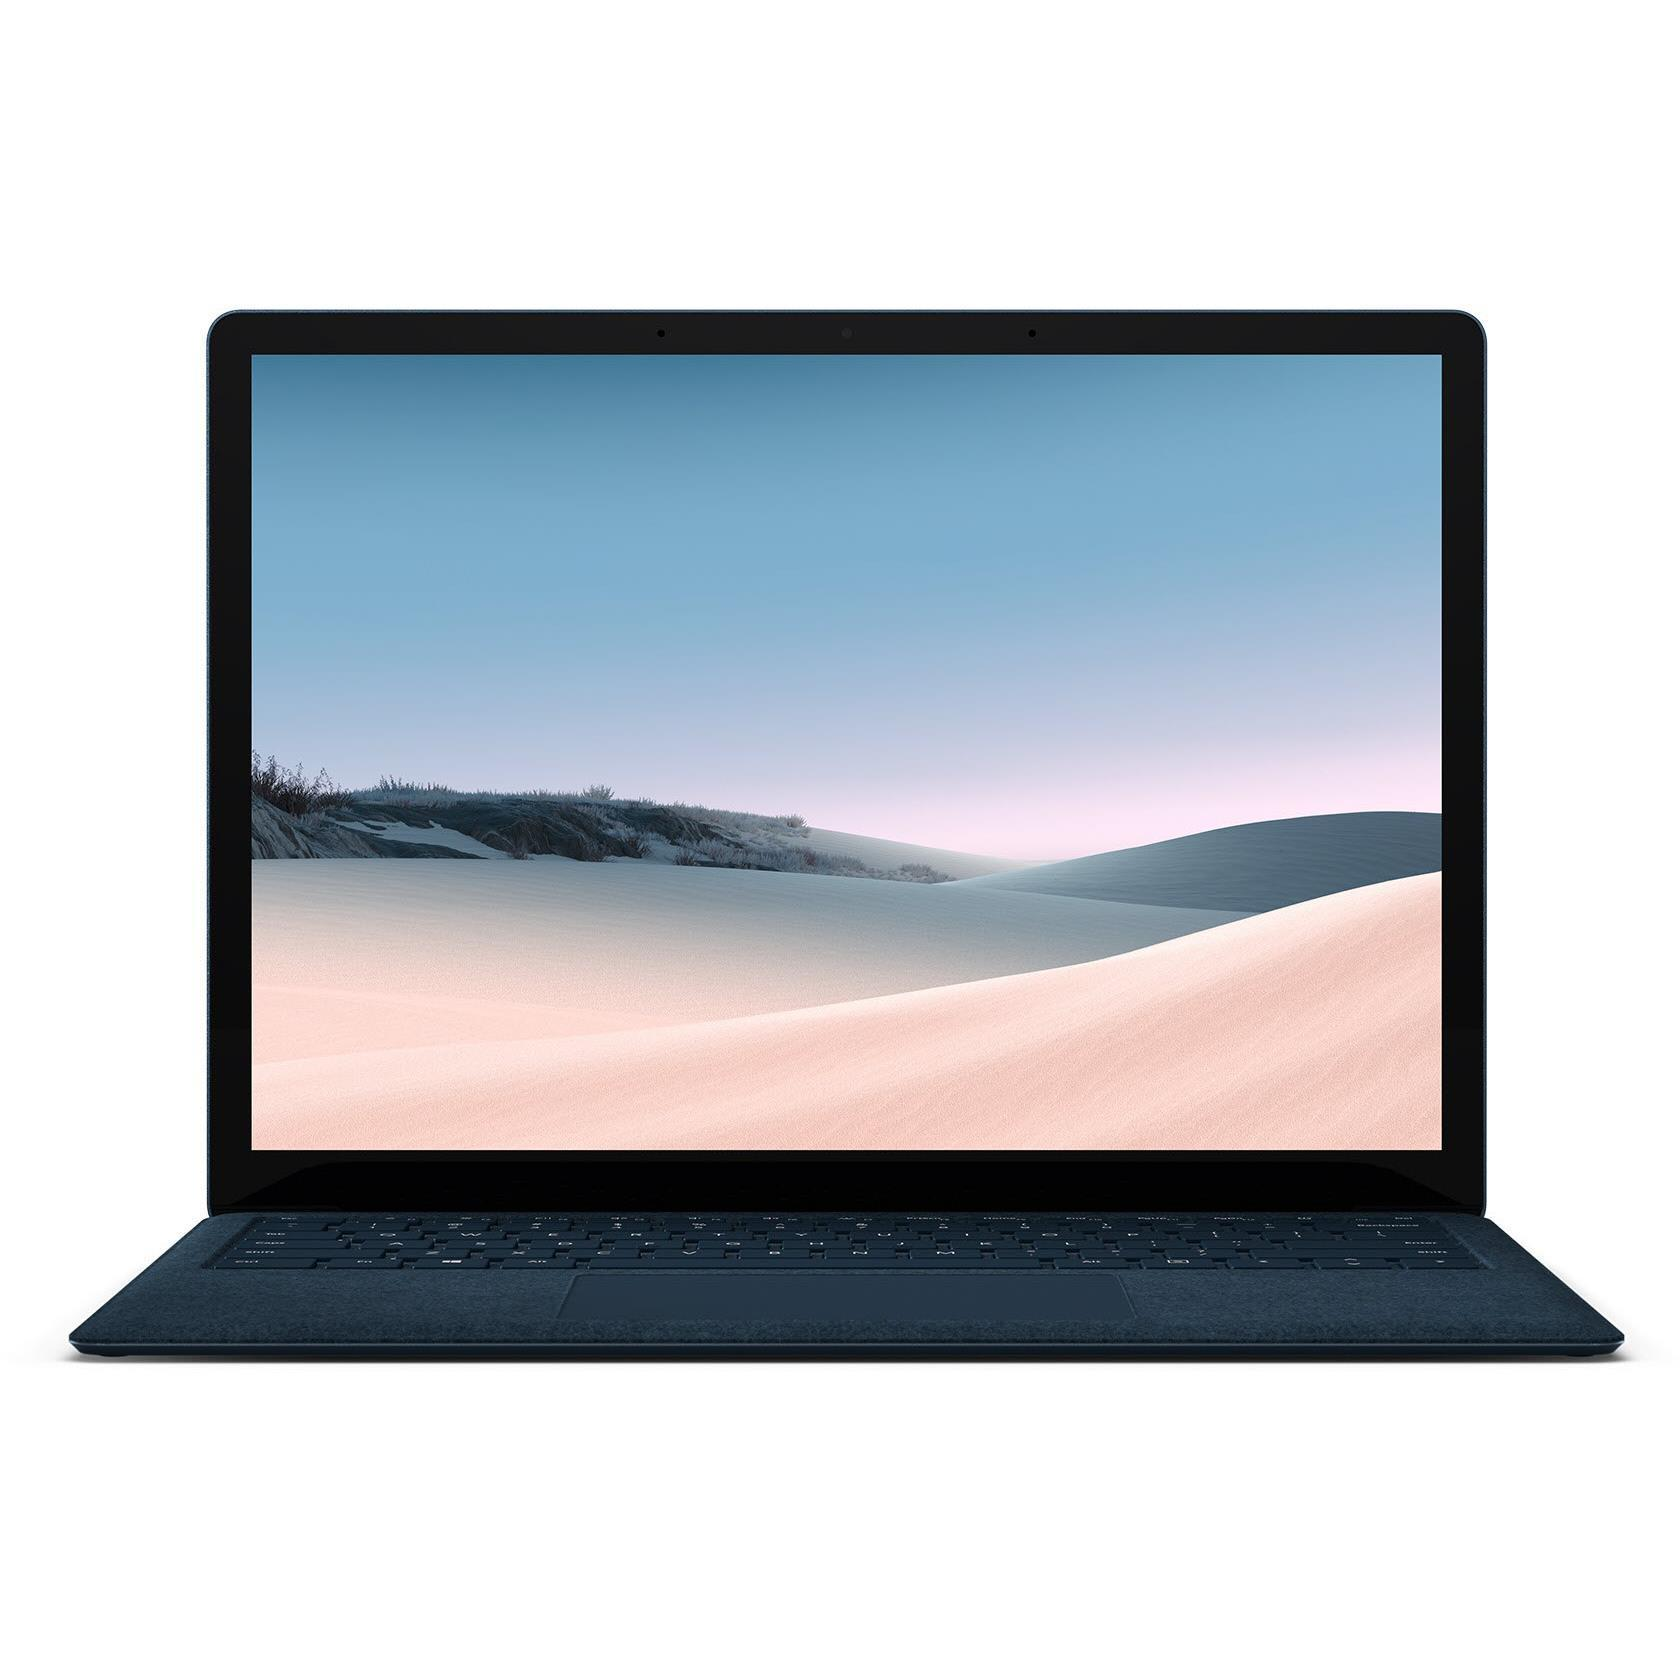 Microsoft Surface Laptop 3 13.5″ i7 256GB (Cobalt)